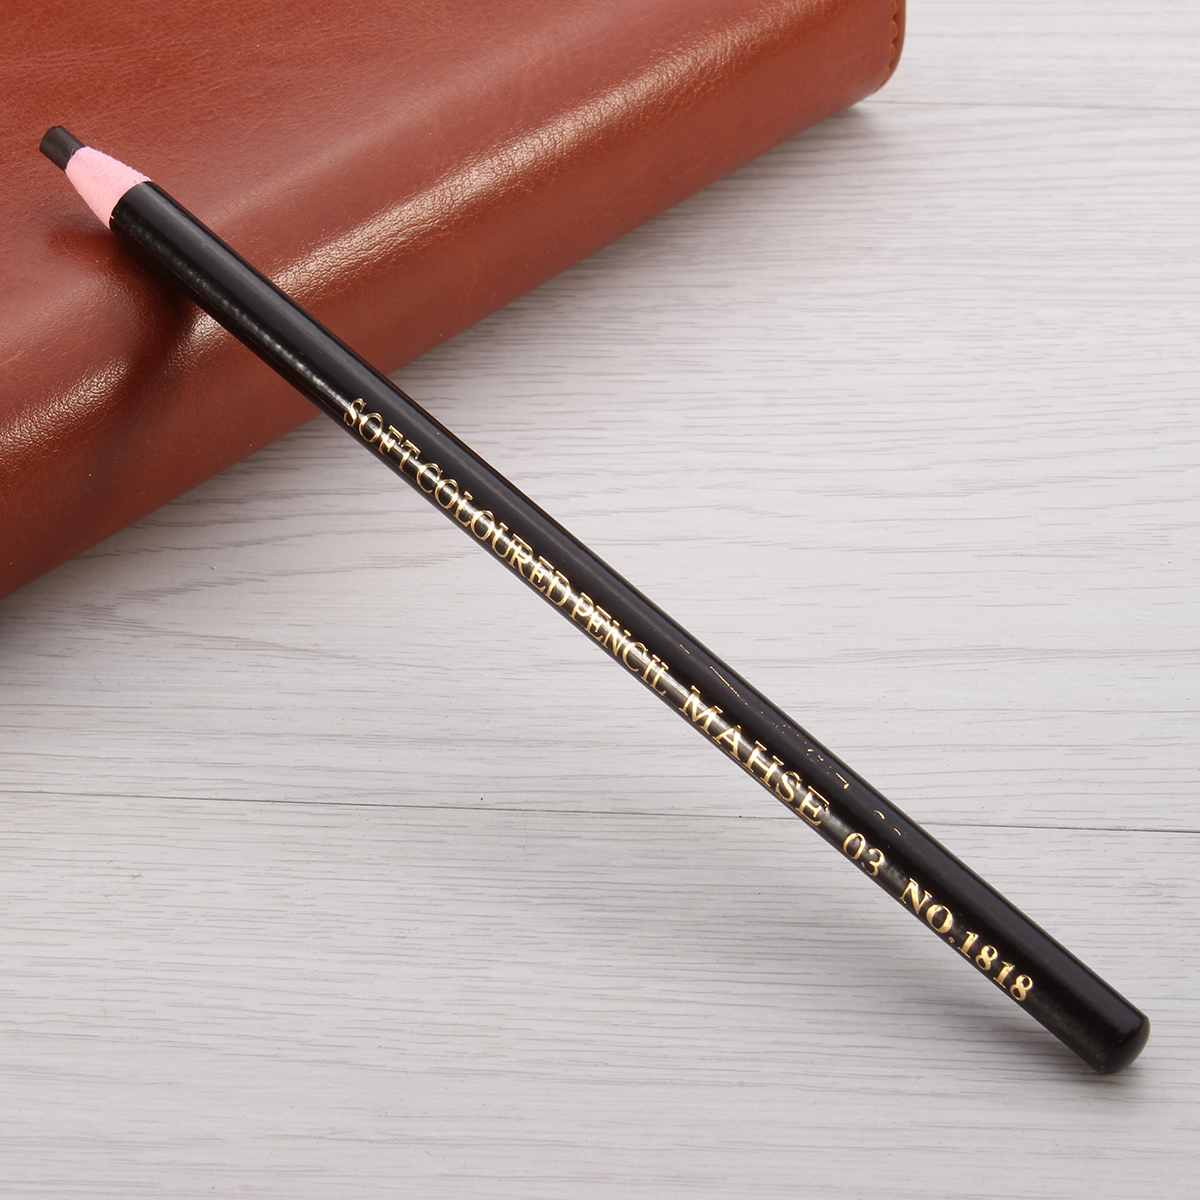 1pc Black Brown Eyebrow Pencil Pen Makeup Cosmetics Long Lasting No Fade